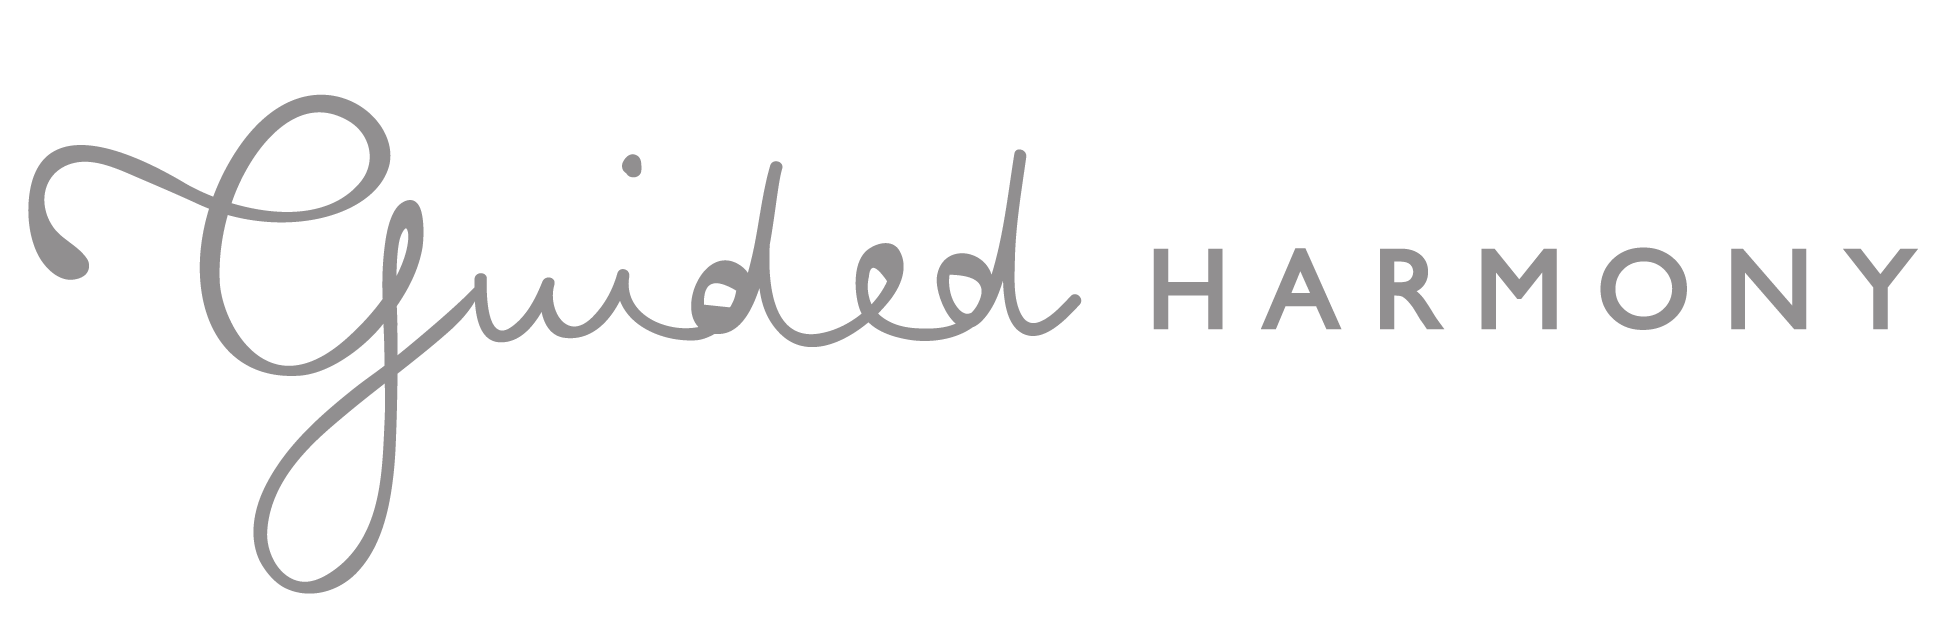 Guided_harmony_logo2-01.png